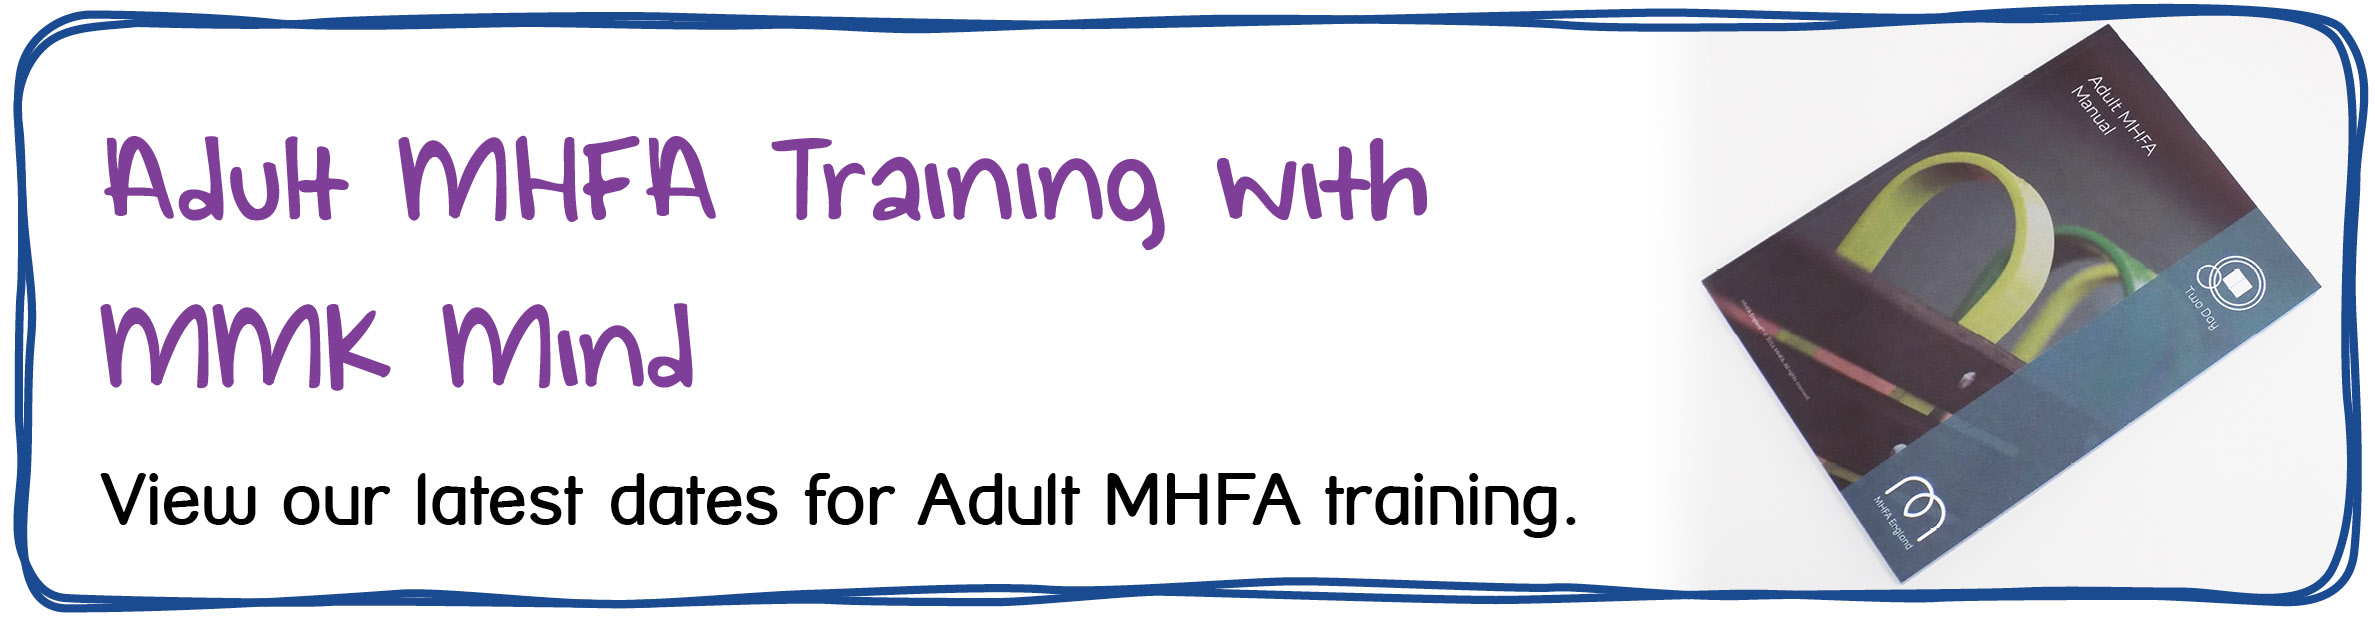 MHFA Adult 2-Day - Adult MHFA Training with MMK Mind. View our latest dates for Adult MHFA training.